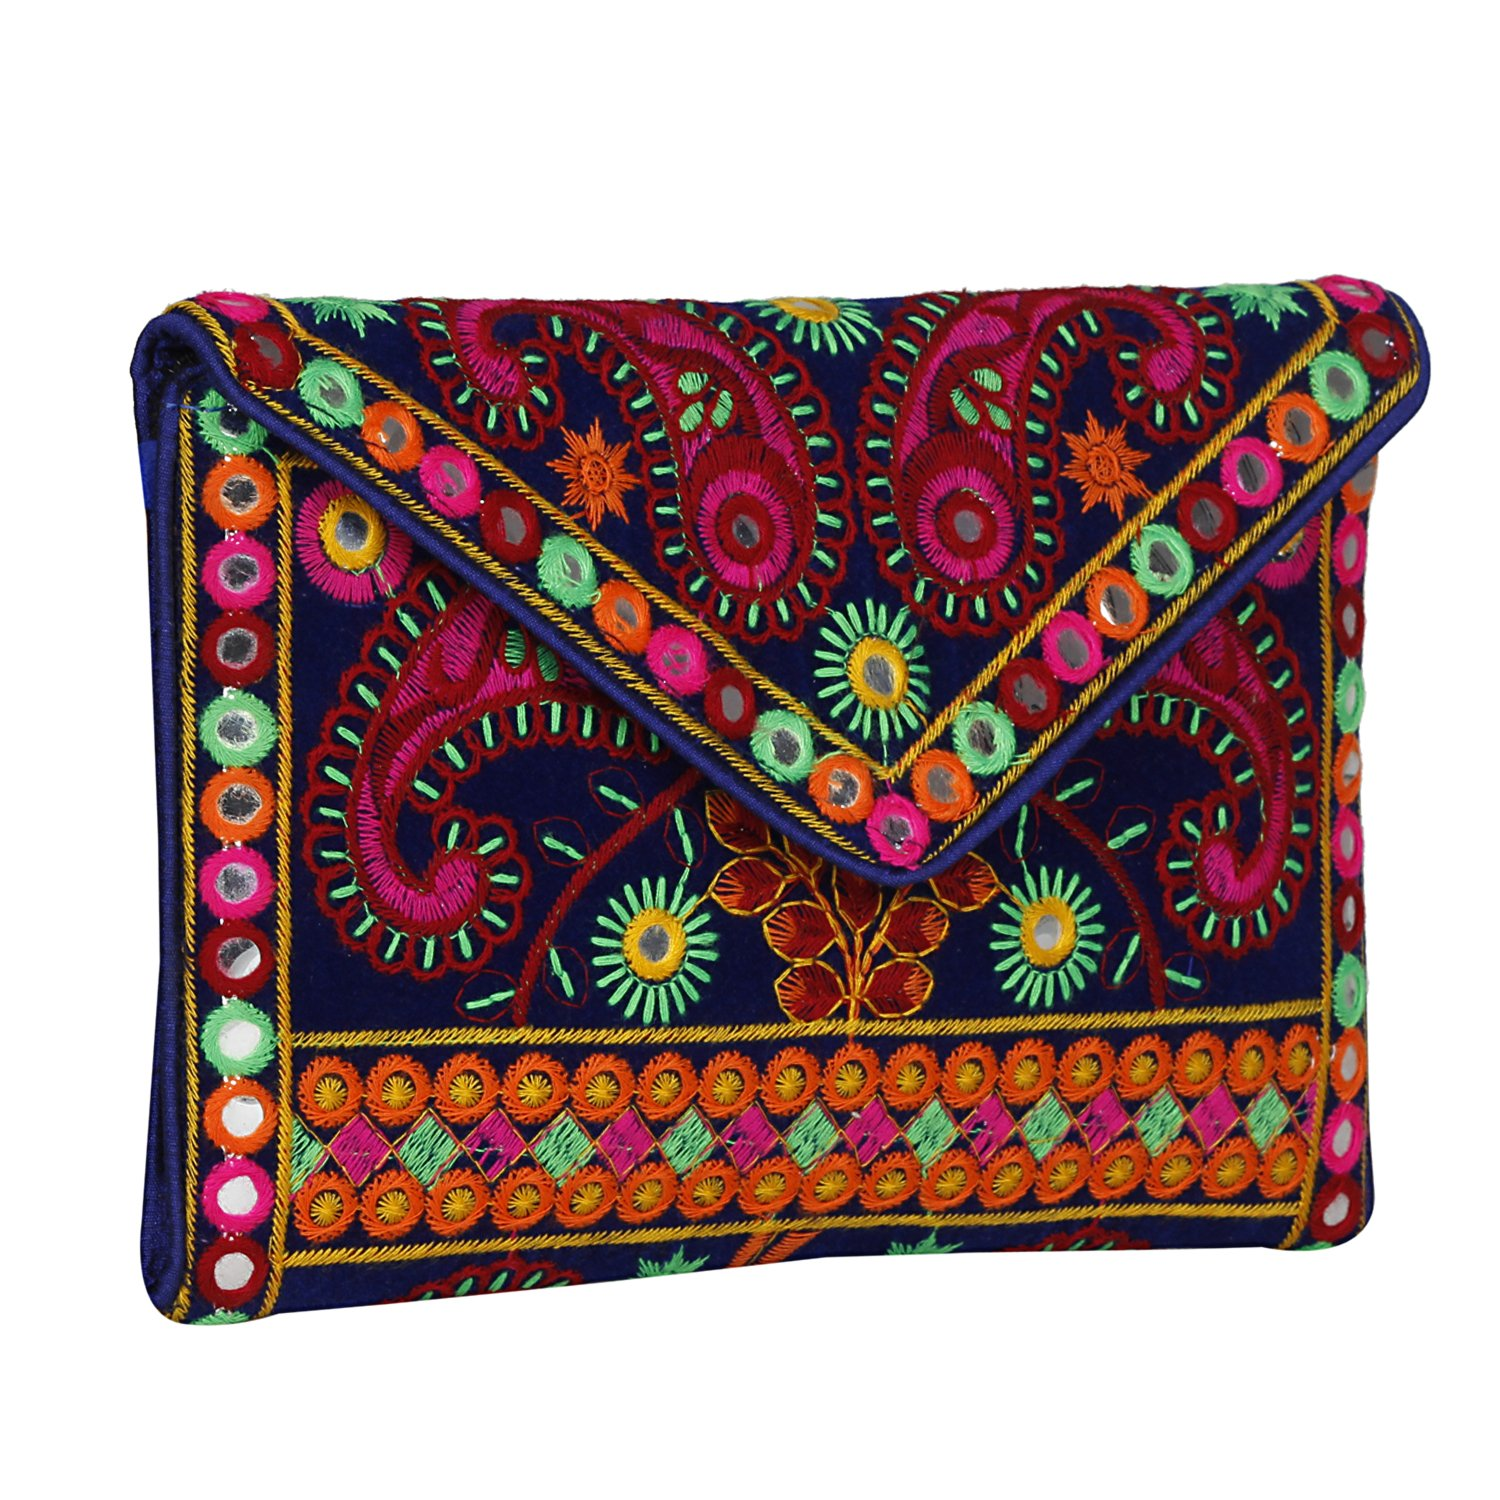 Floral embroidery with Exquisite Handmade Colorful Cotton Thread Embroidery over Blue Velvet